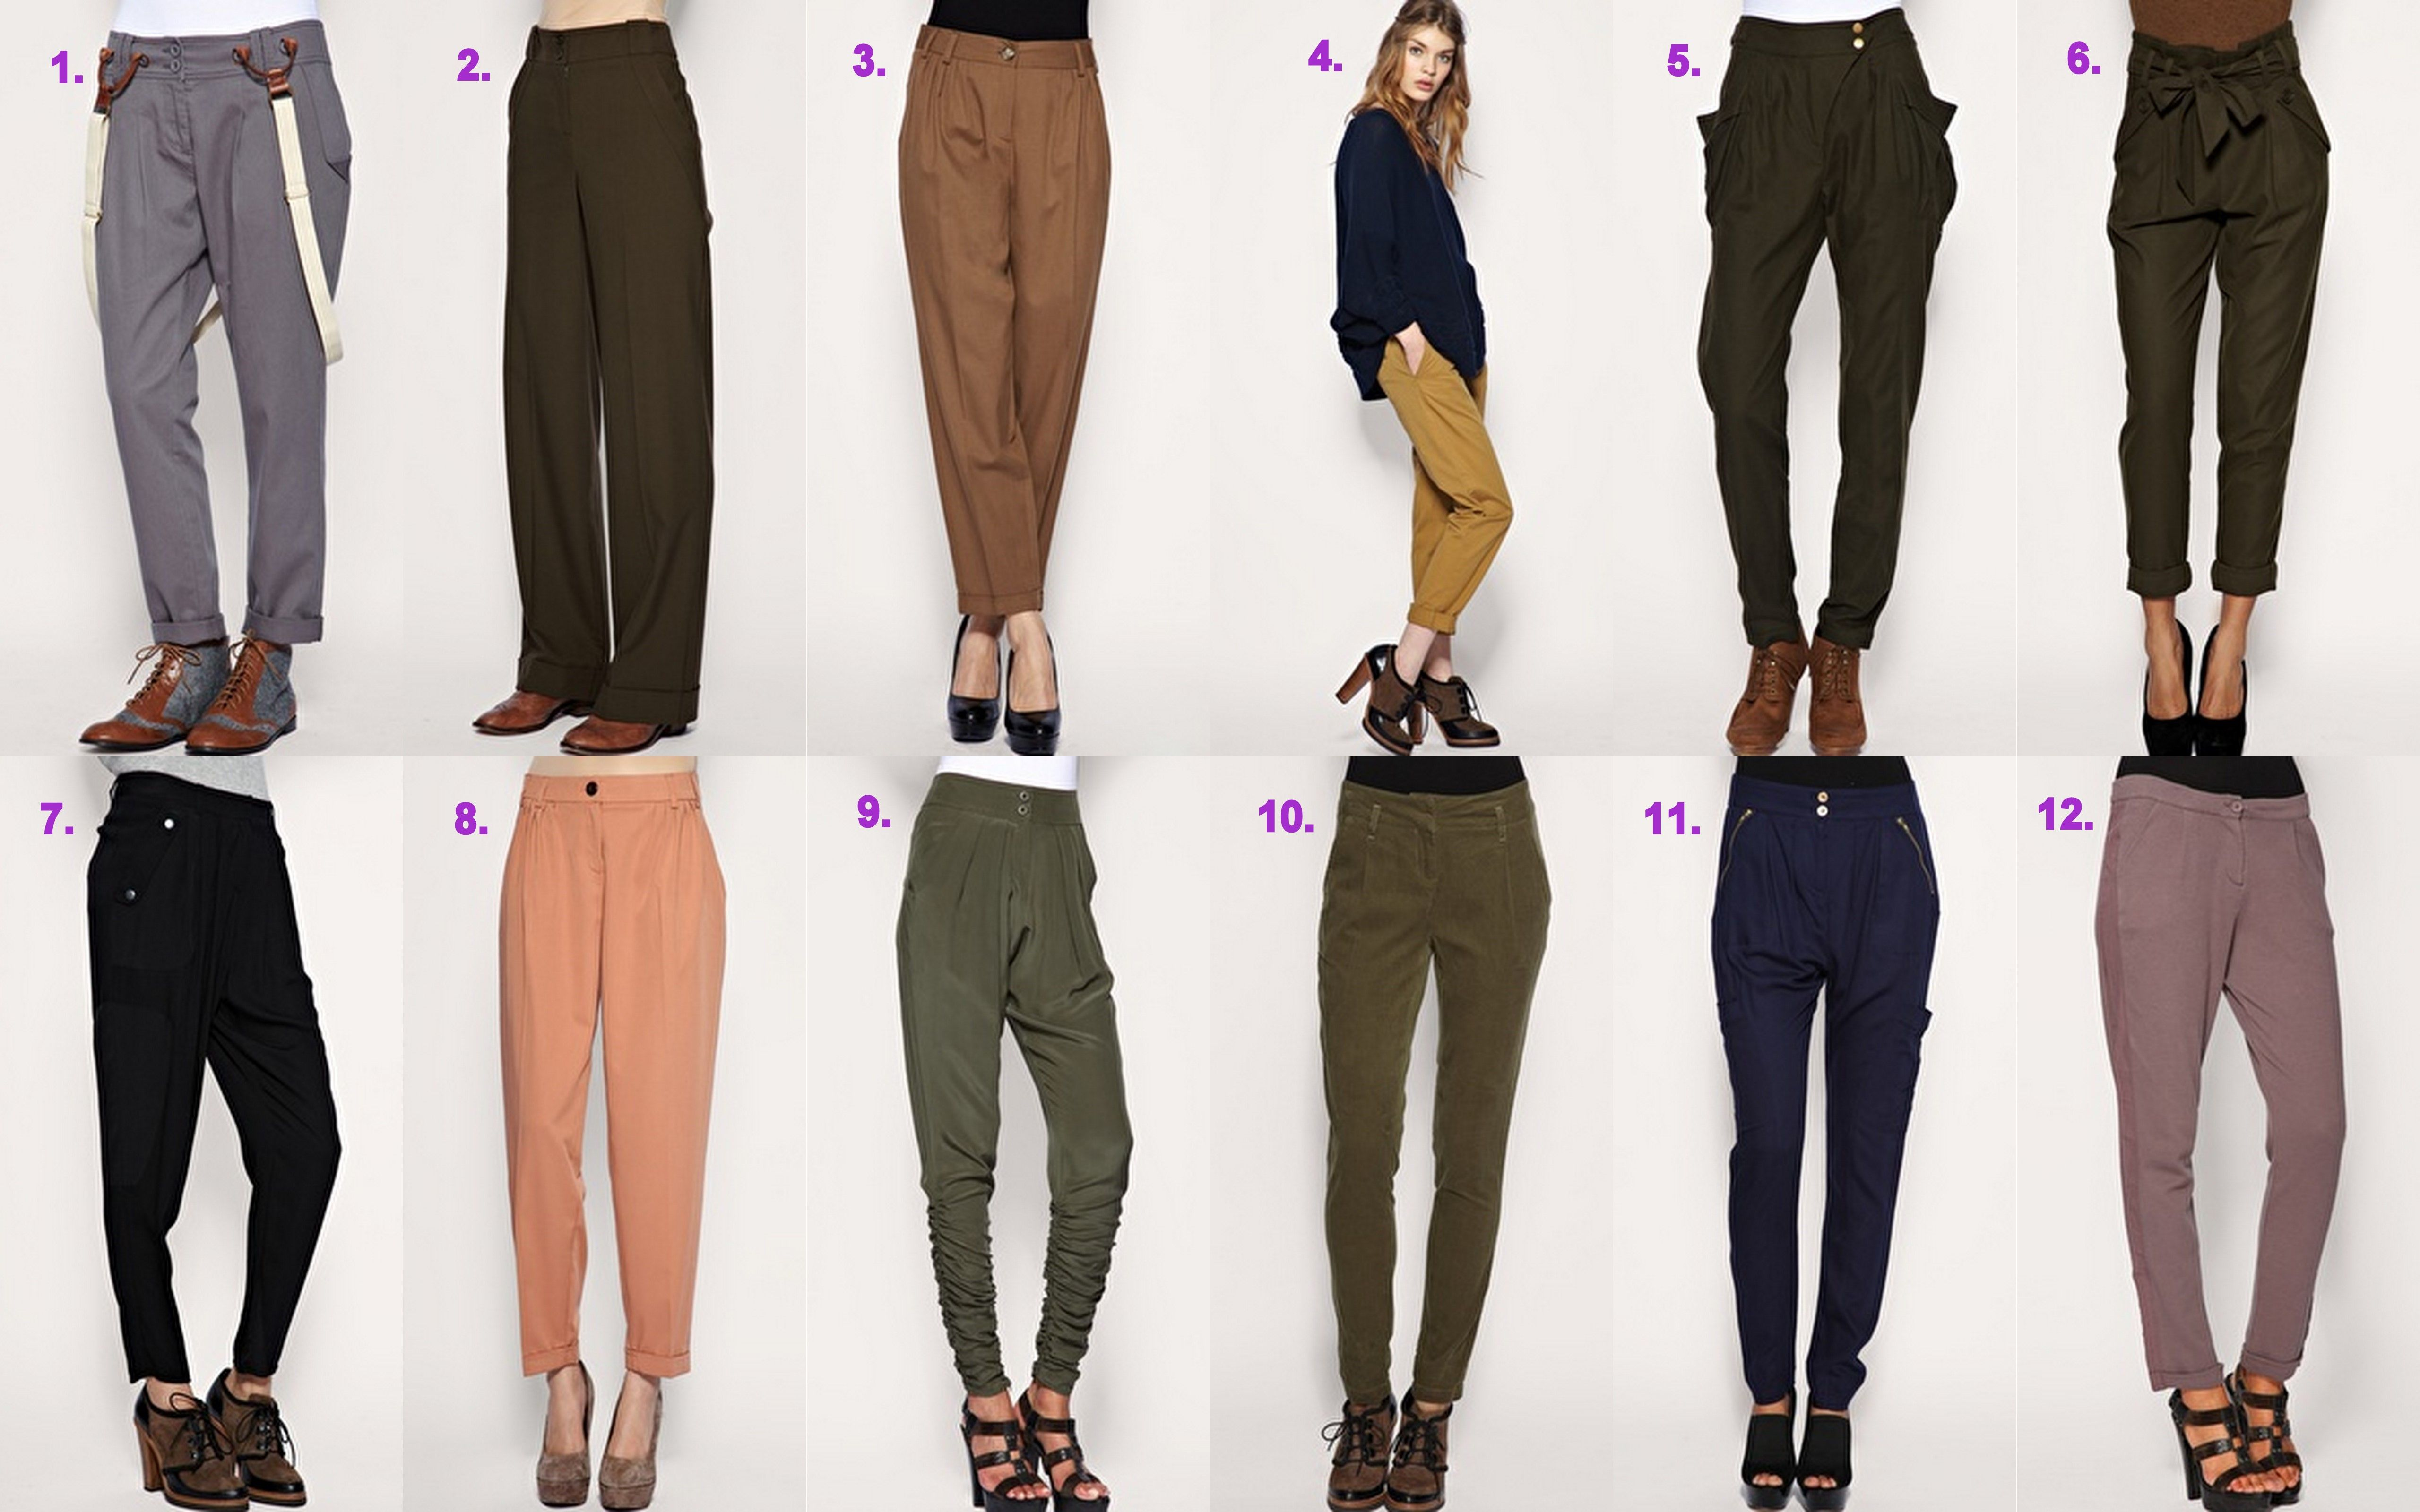 fashion | Black Peg Leg Trousers for Fantastic Choice for Up-To-Date  Everyday